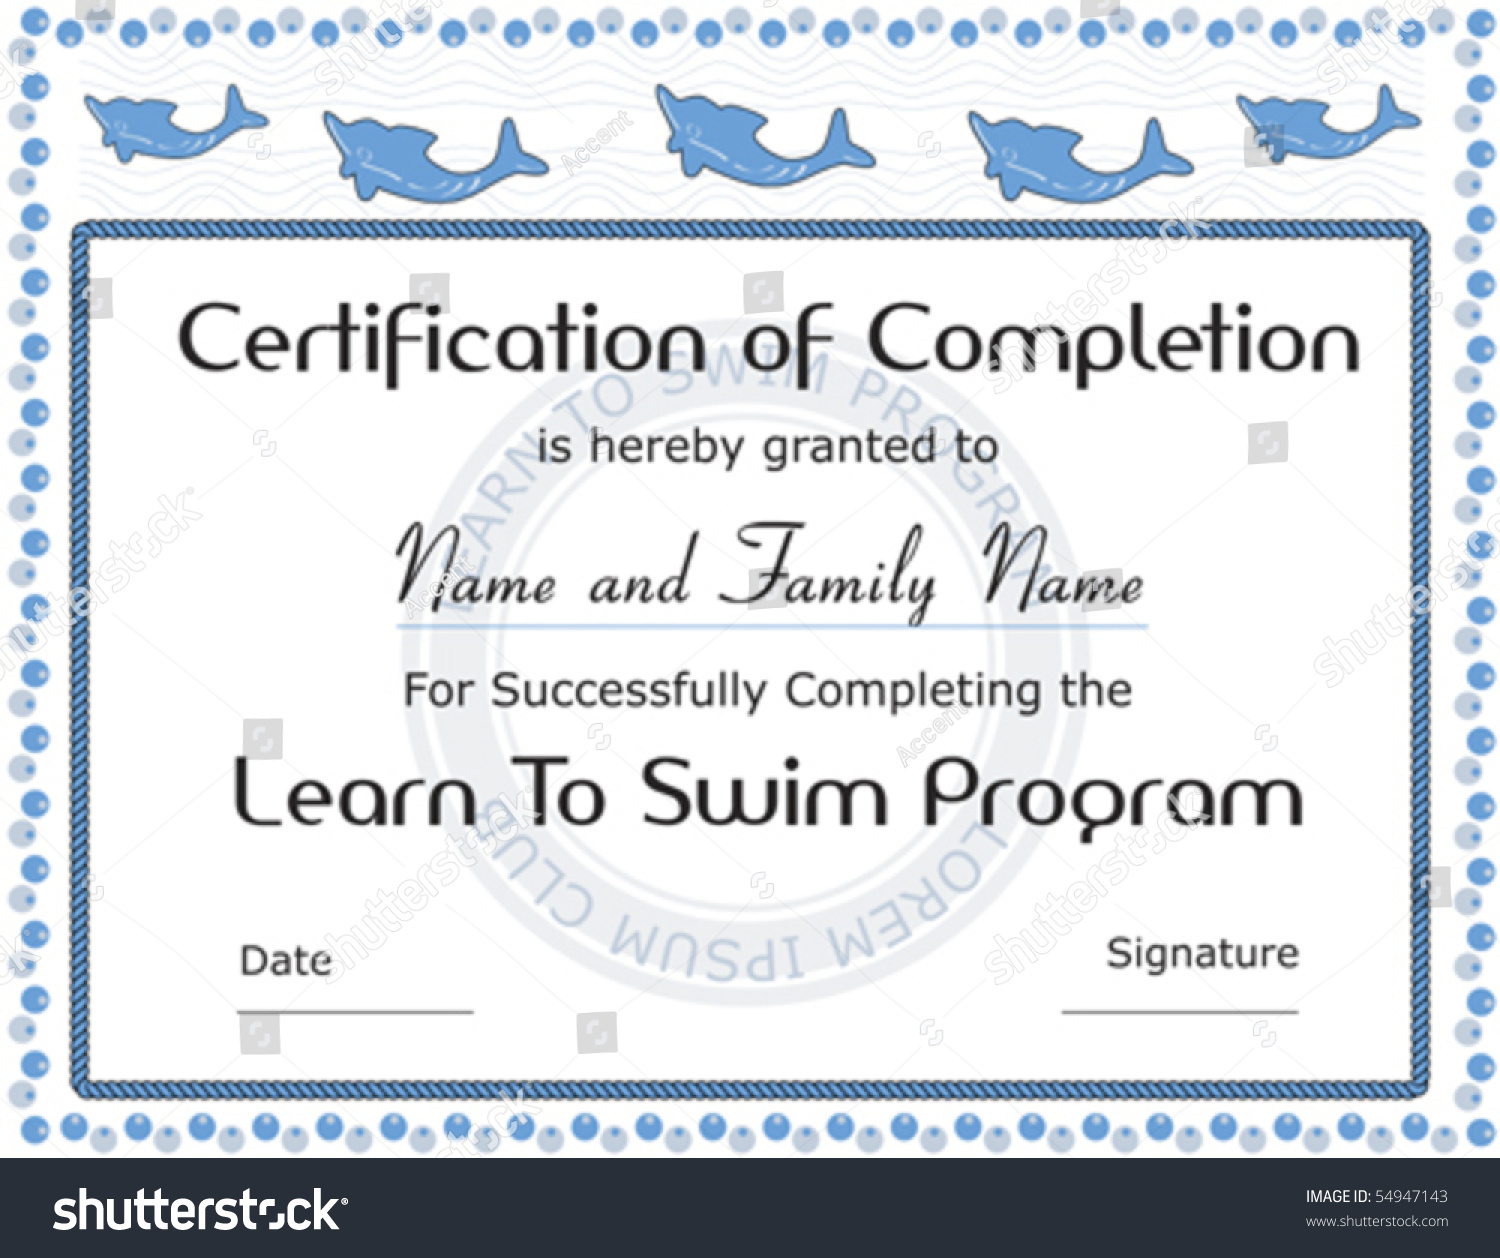 completion certificate format – Samples of Certificate of Completion